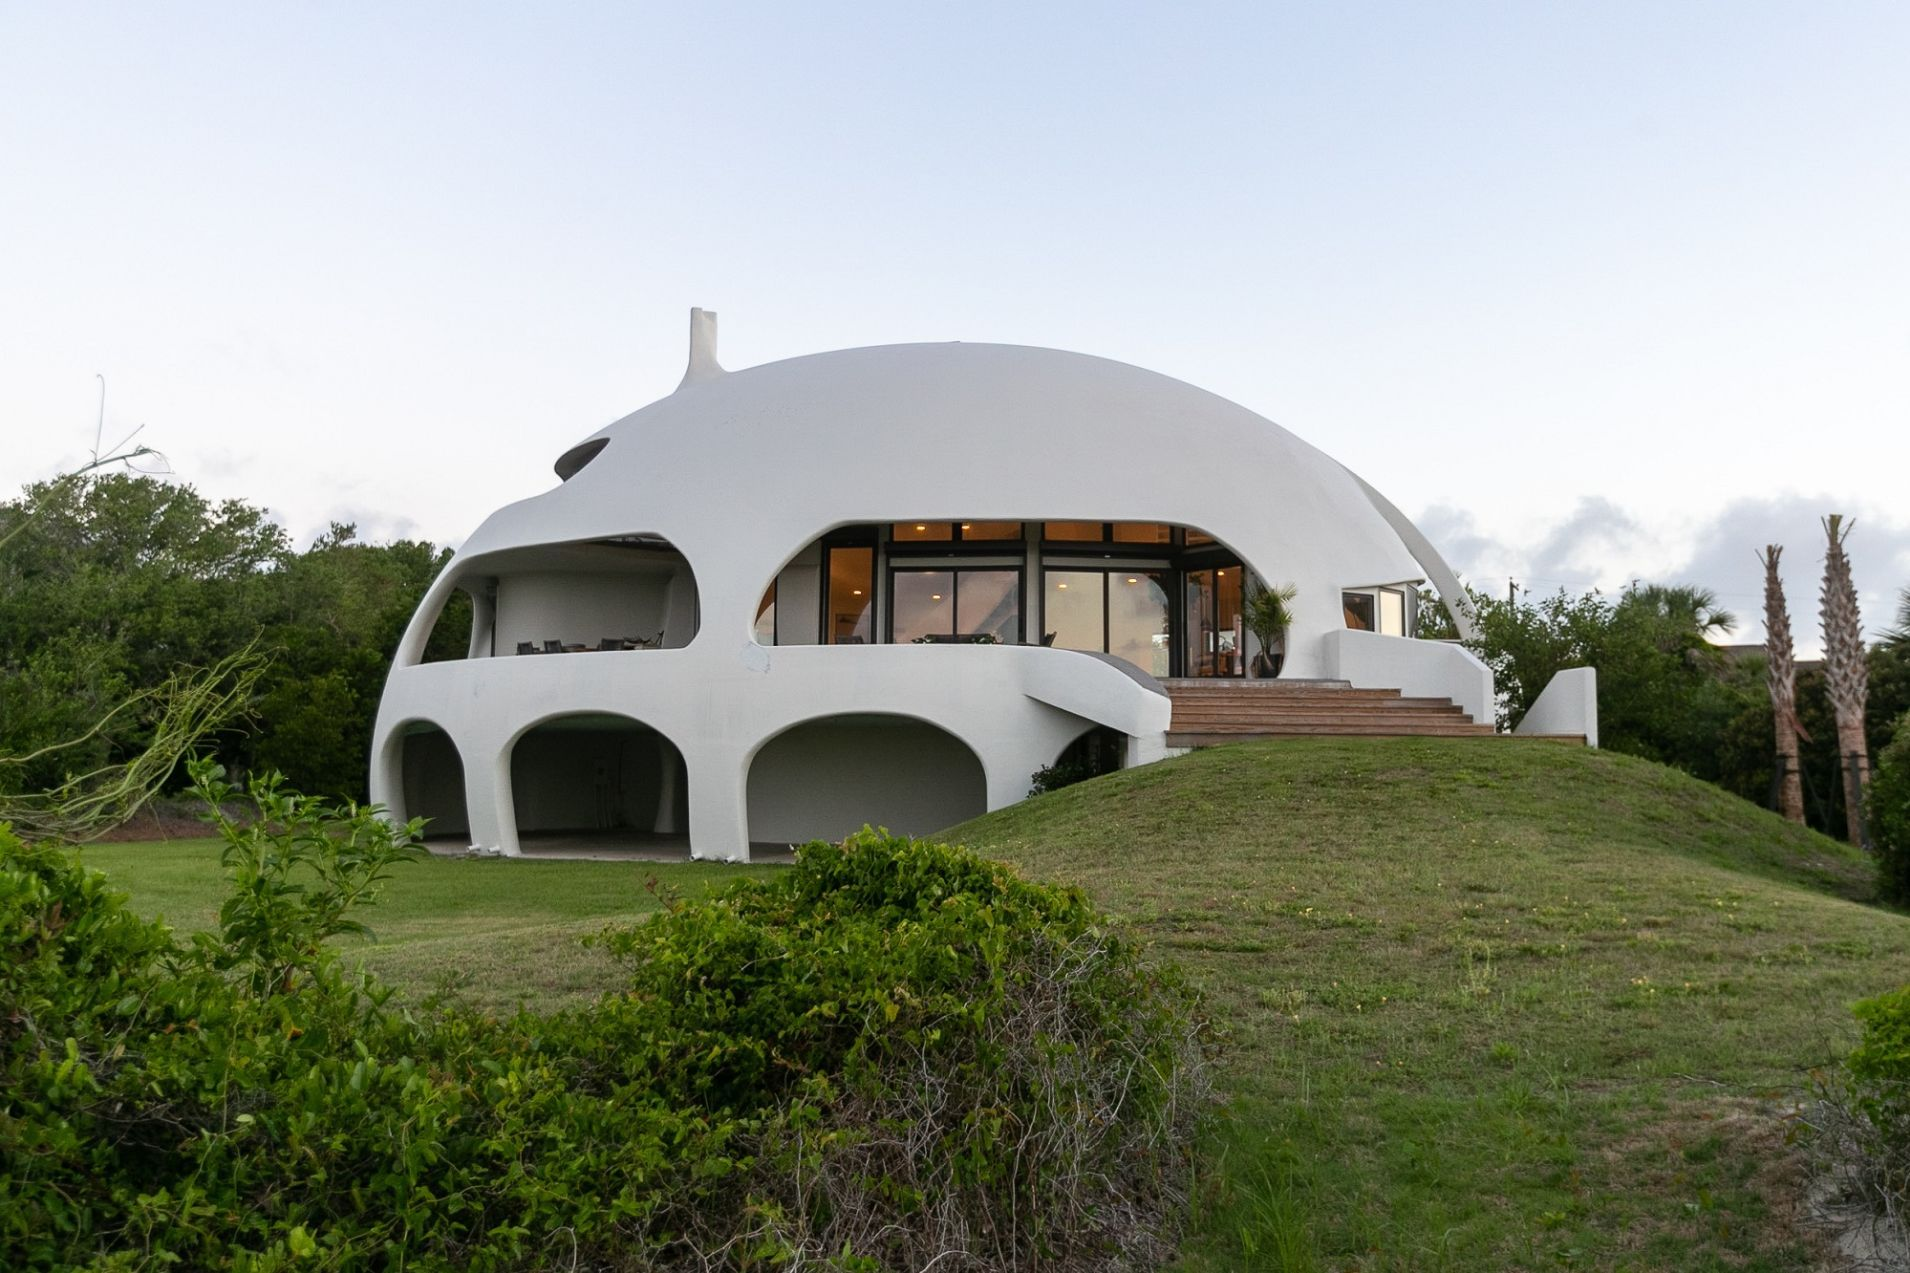 Designing Architecture For Climate Change Nonagon Style Dome House Architecture Round Building